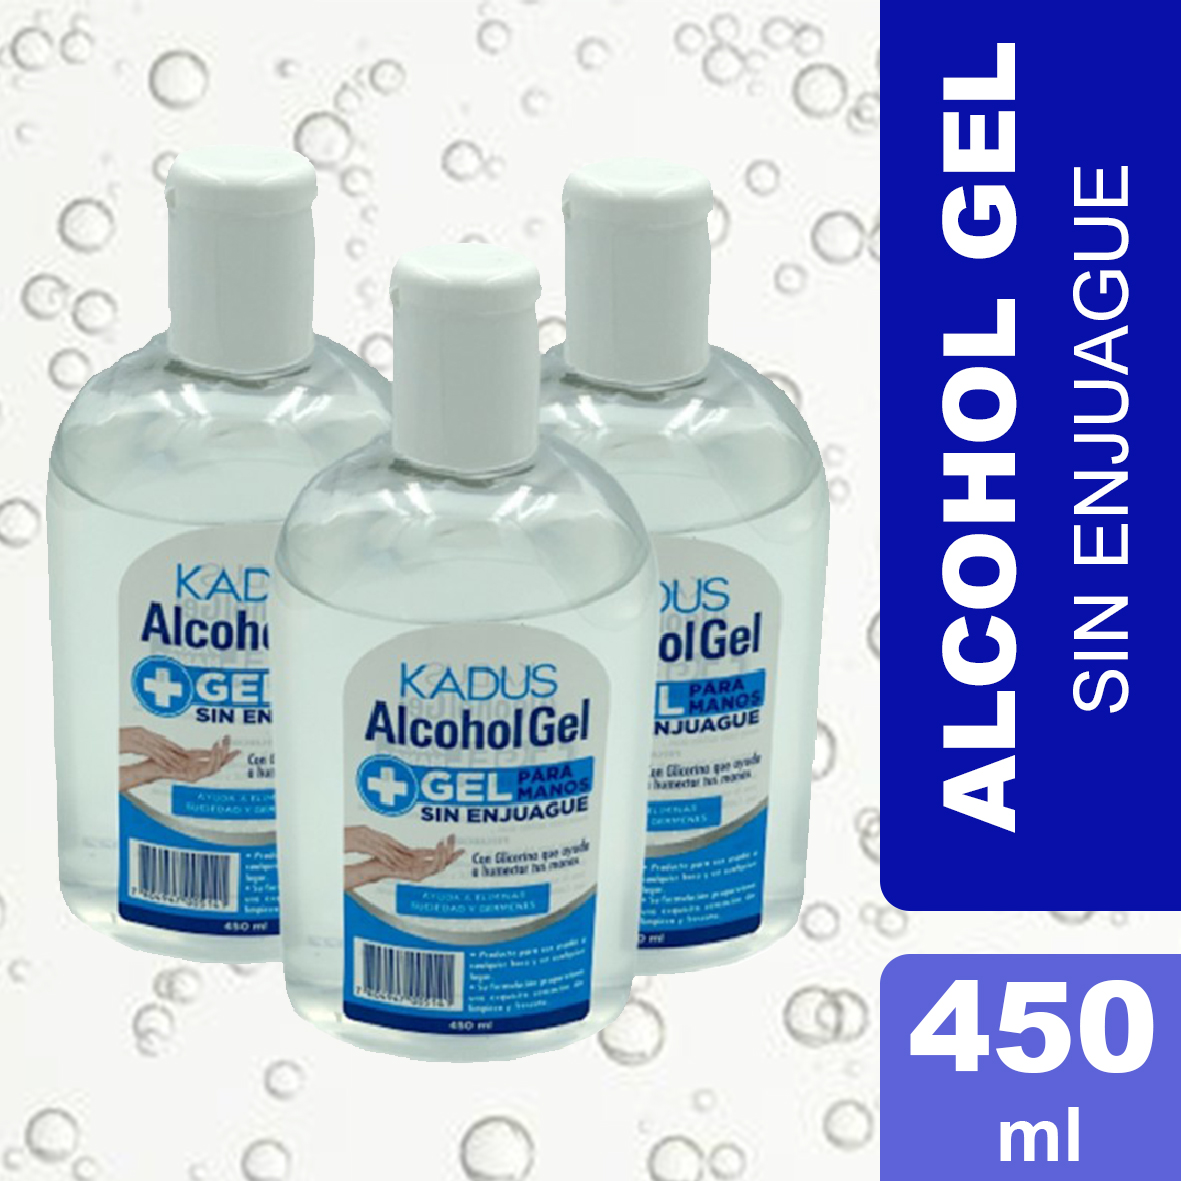 alcoholgel 450ml